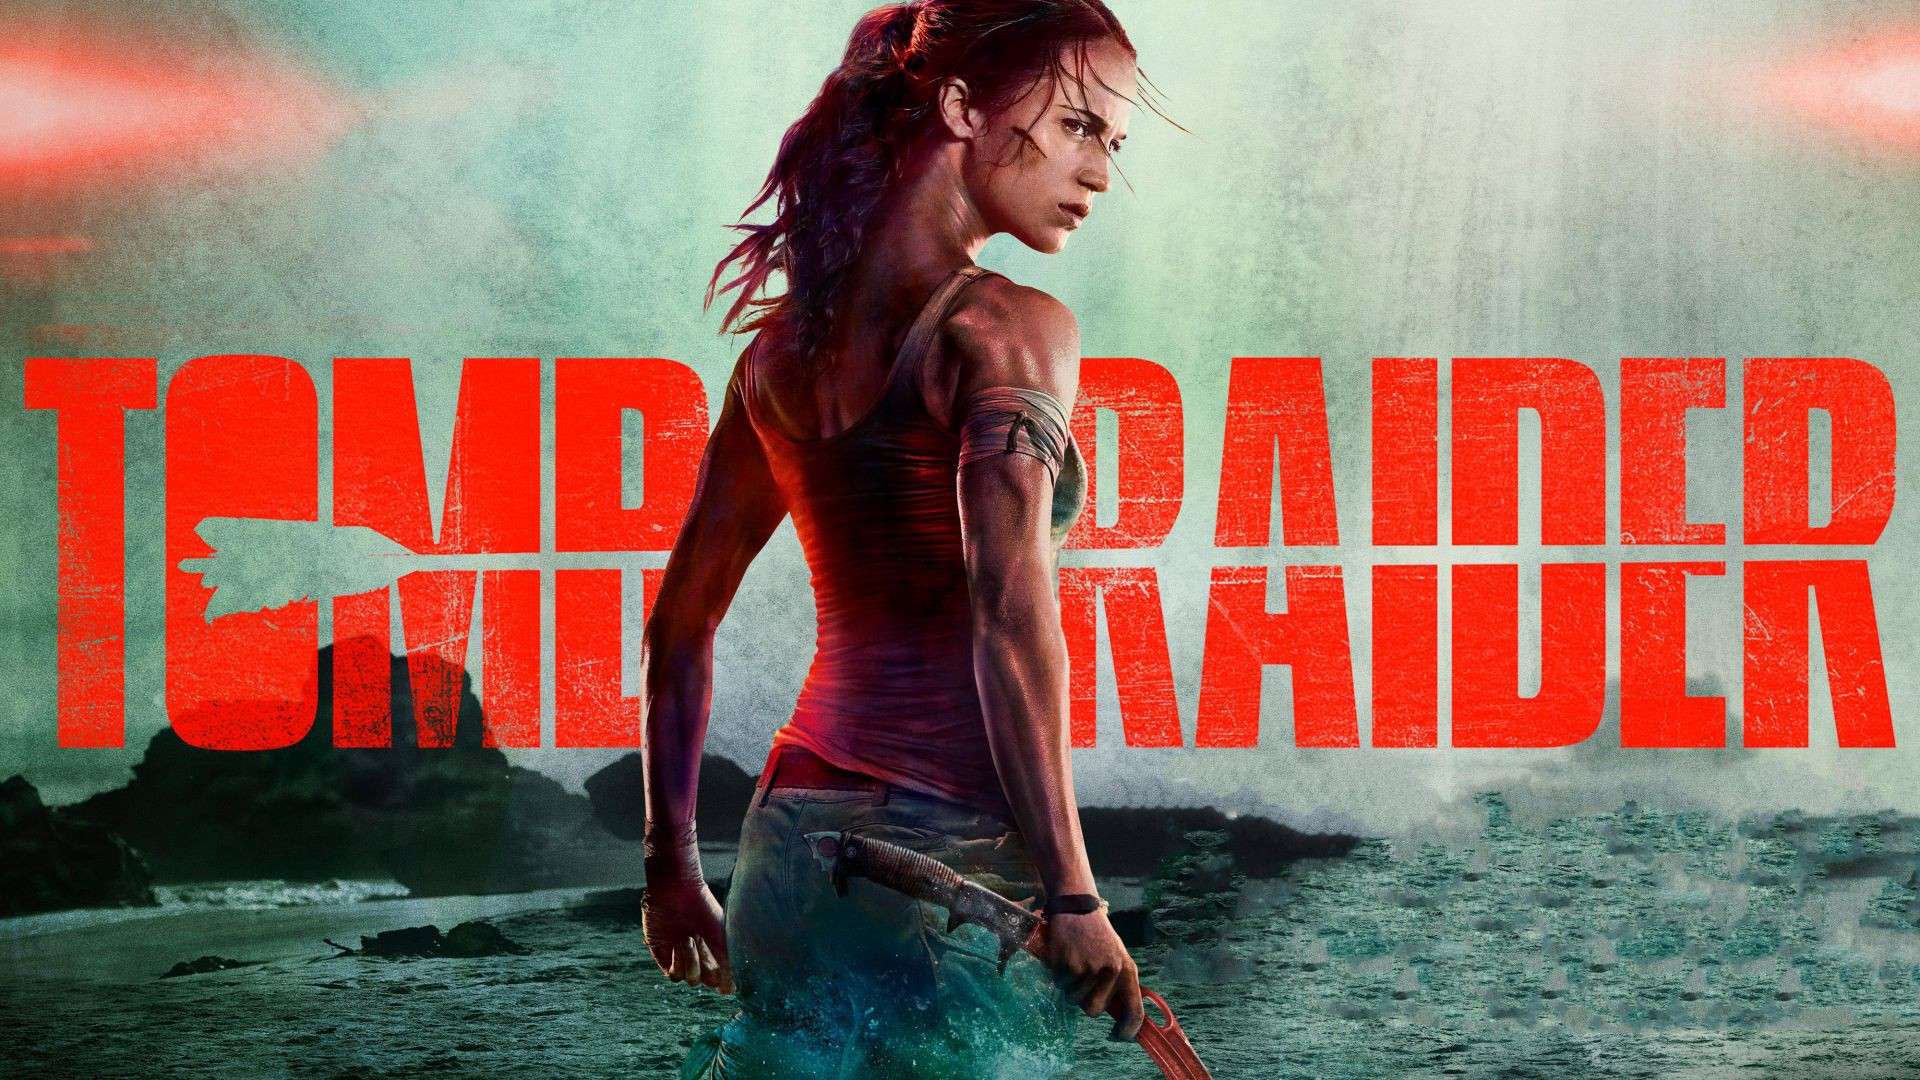 Movie Review: Tomb Raider (2018). This movie reboot adapted from the game…  | by Benjamin Ho | Coucher.Blog | Medium